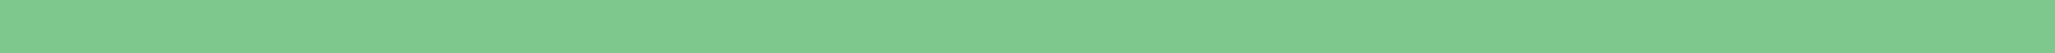 light green divider _ehl